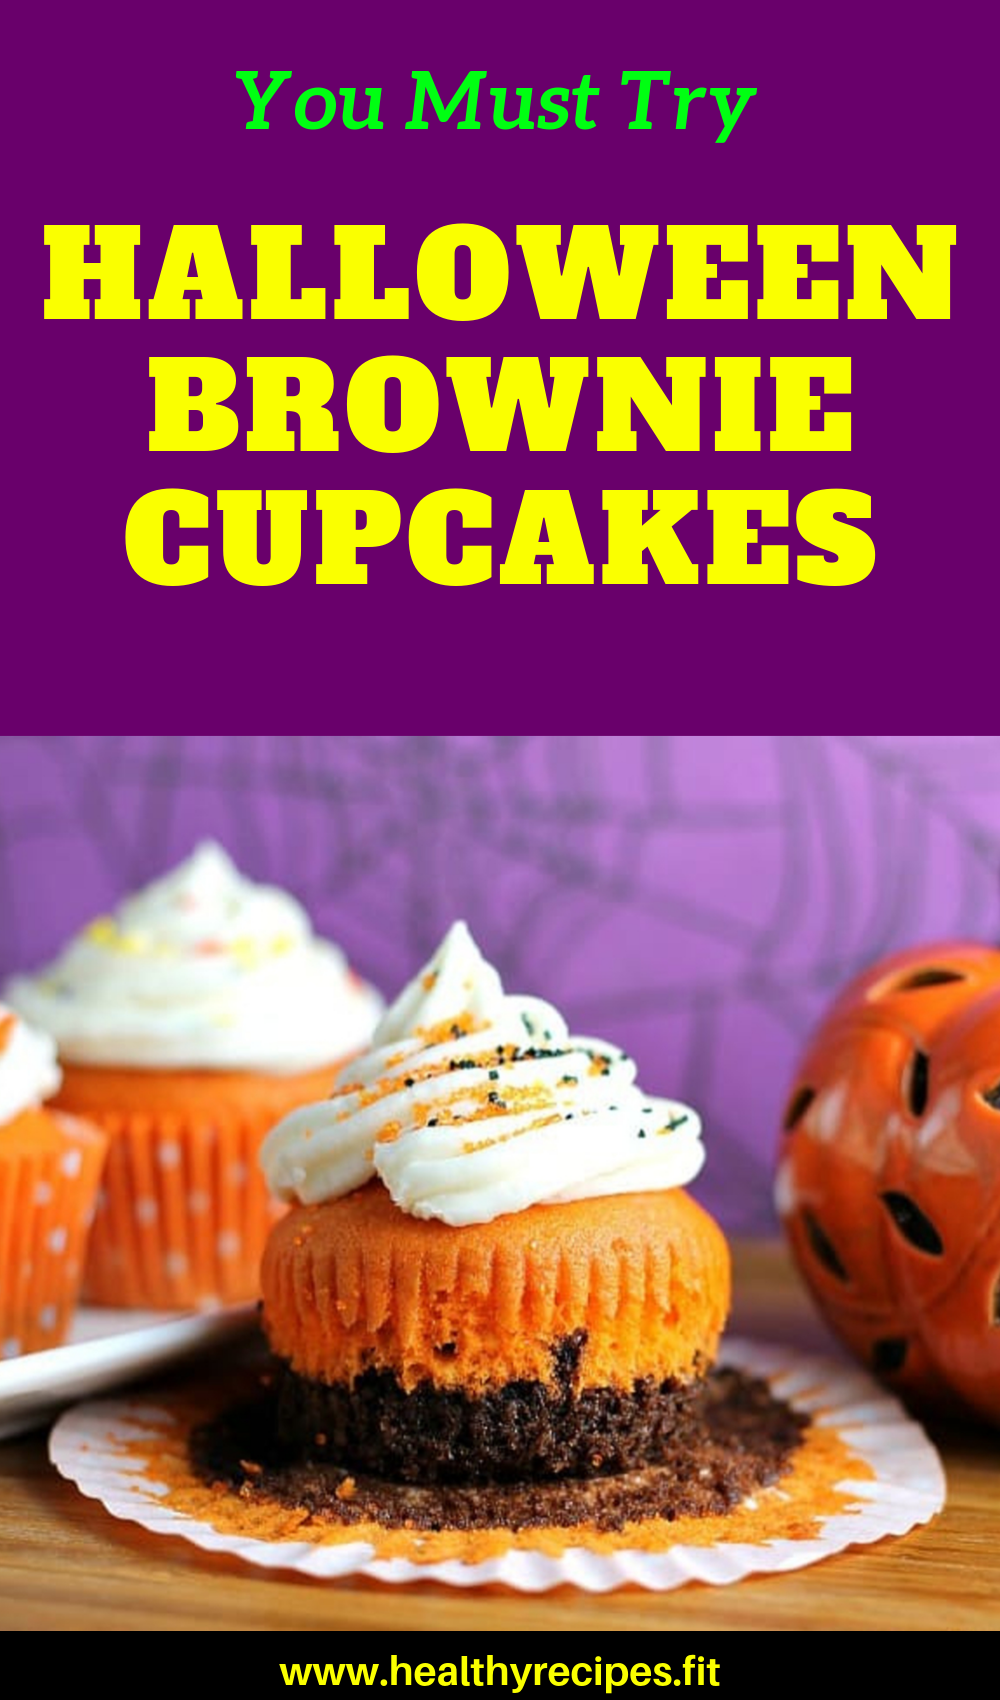 Halloween Brownie Cupcakes | healthyrecipes.fit #halloweenbrownies Halloween Brownie Cupcakes are tremendous yummy and really easy to make. A singular twist on a traditional – brownies plus cake plus frosting in a single distinctive and scrumptious Cupcake.  #healthysnacks #halloween #halloweensnacks #halloweenrecipes #halloweenfood #halloweendinner #halloweendessert #healthyfood #healthydessert #healthyrecipes #halloweenbrownies